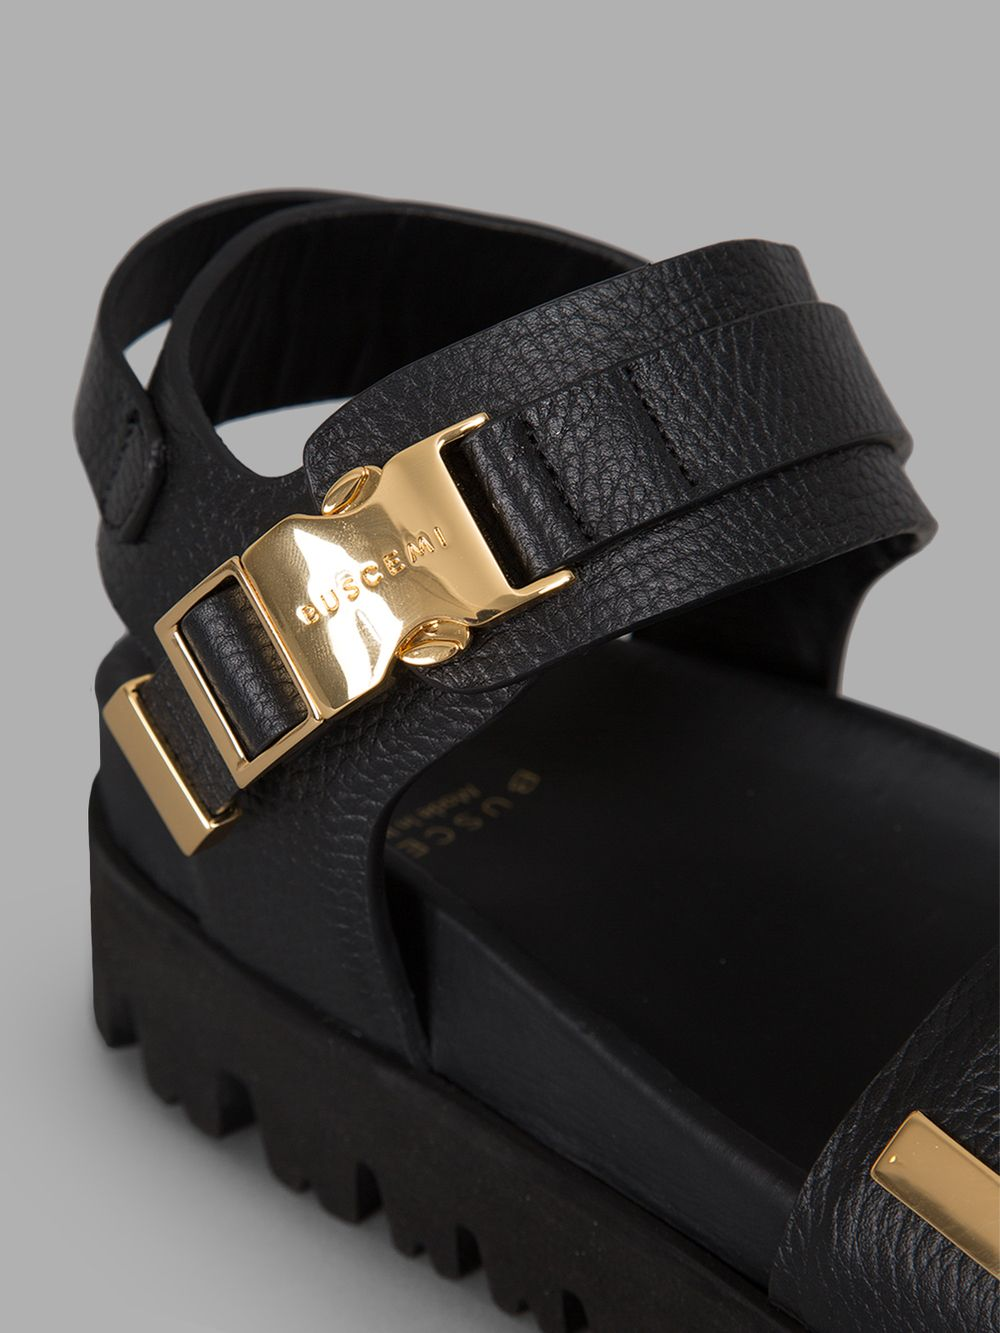 e95248b7ea65 BUSCEMI MEN S SANDALS. Find this Pin and more on Casual Shoes ...